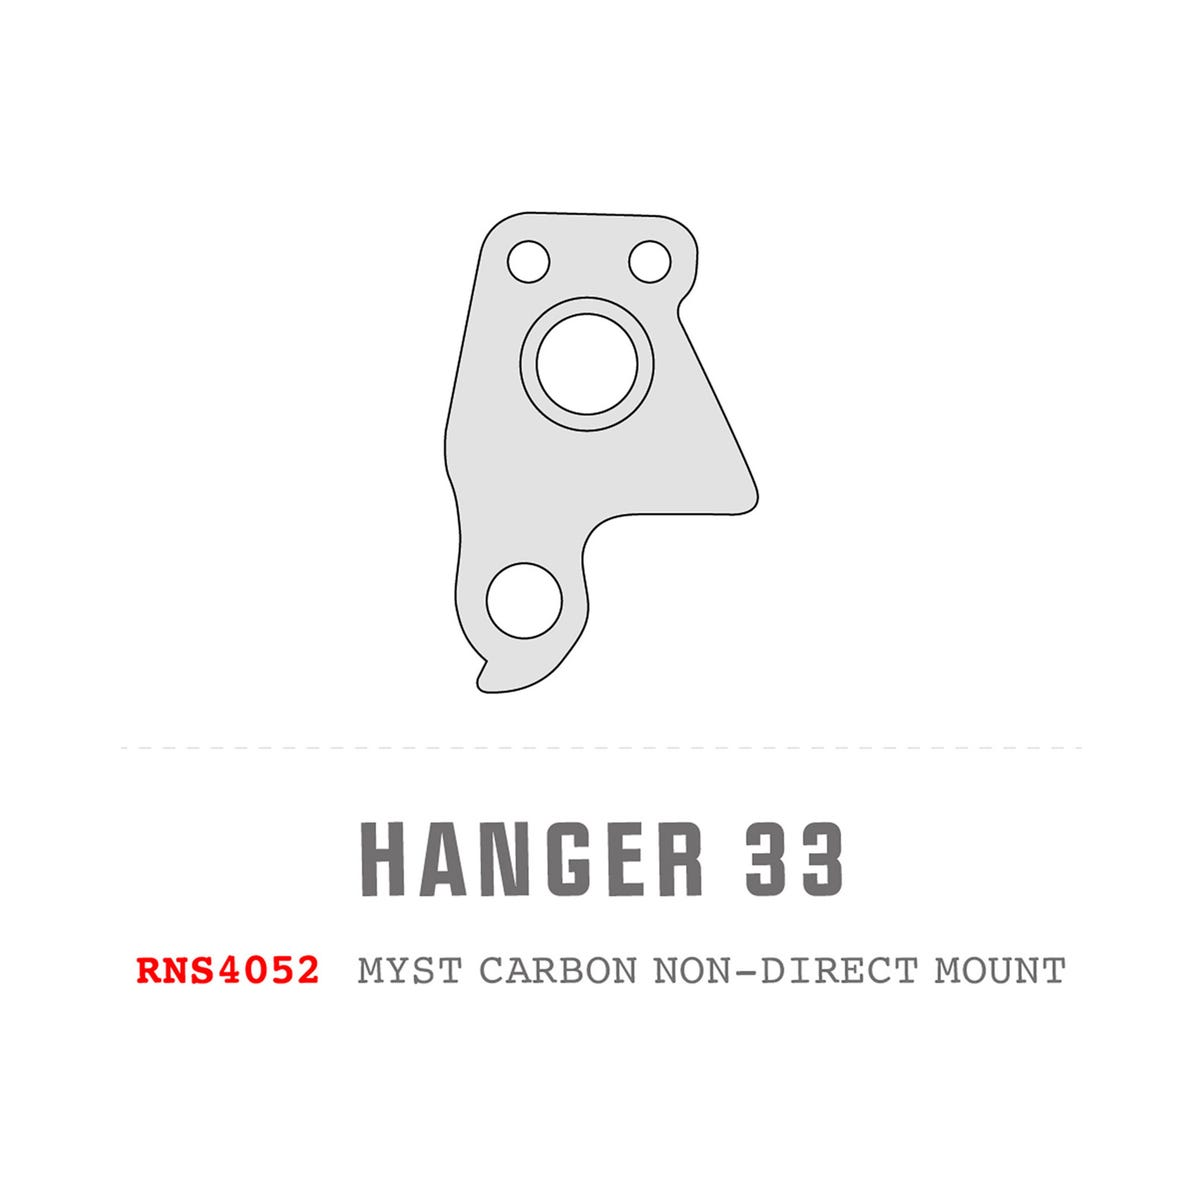 Saracen Hanger 33 fits: 2019 - 2020 Myst Carbon (Non-Direct)